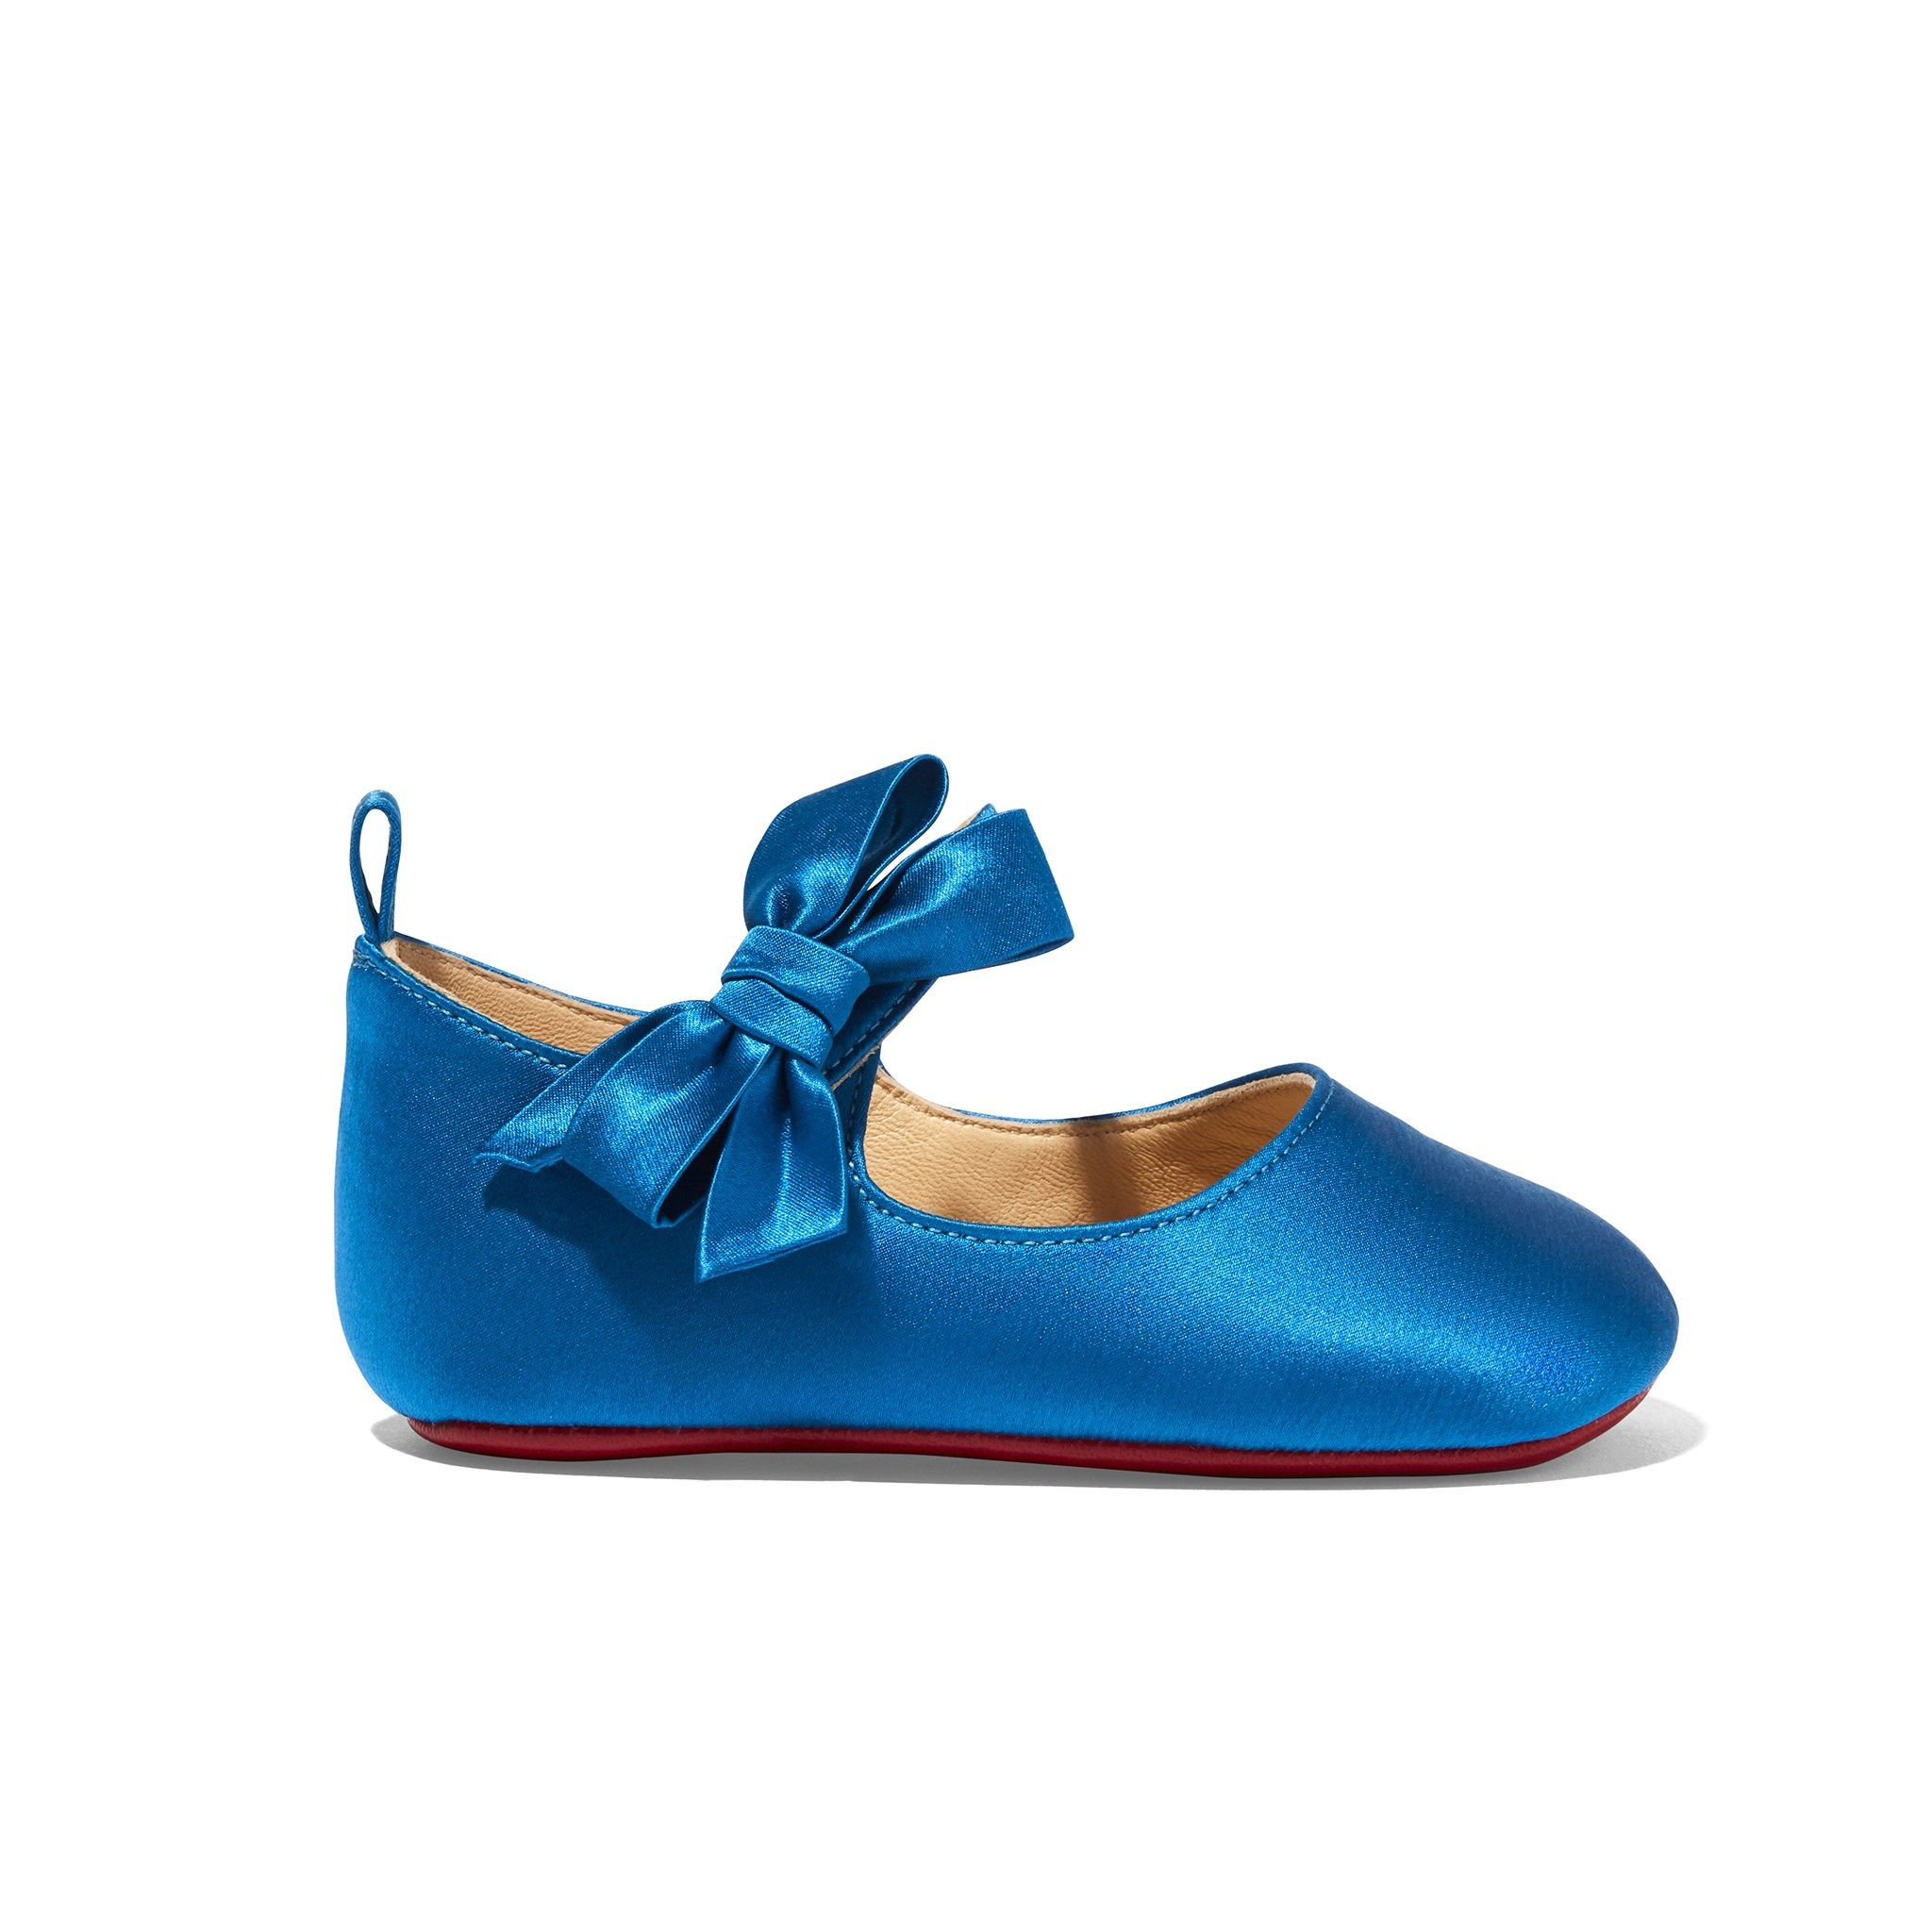 56a781f415d Christian Louboutin Designed  250 Baby Shoes For Gwyneth Paltrow s ...